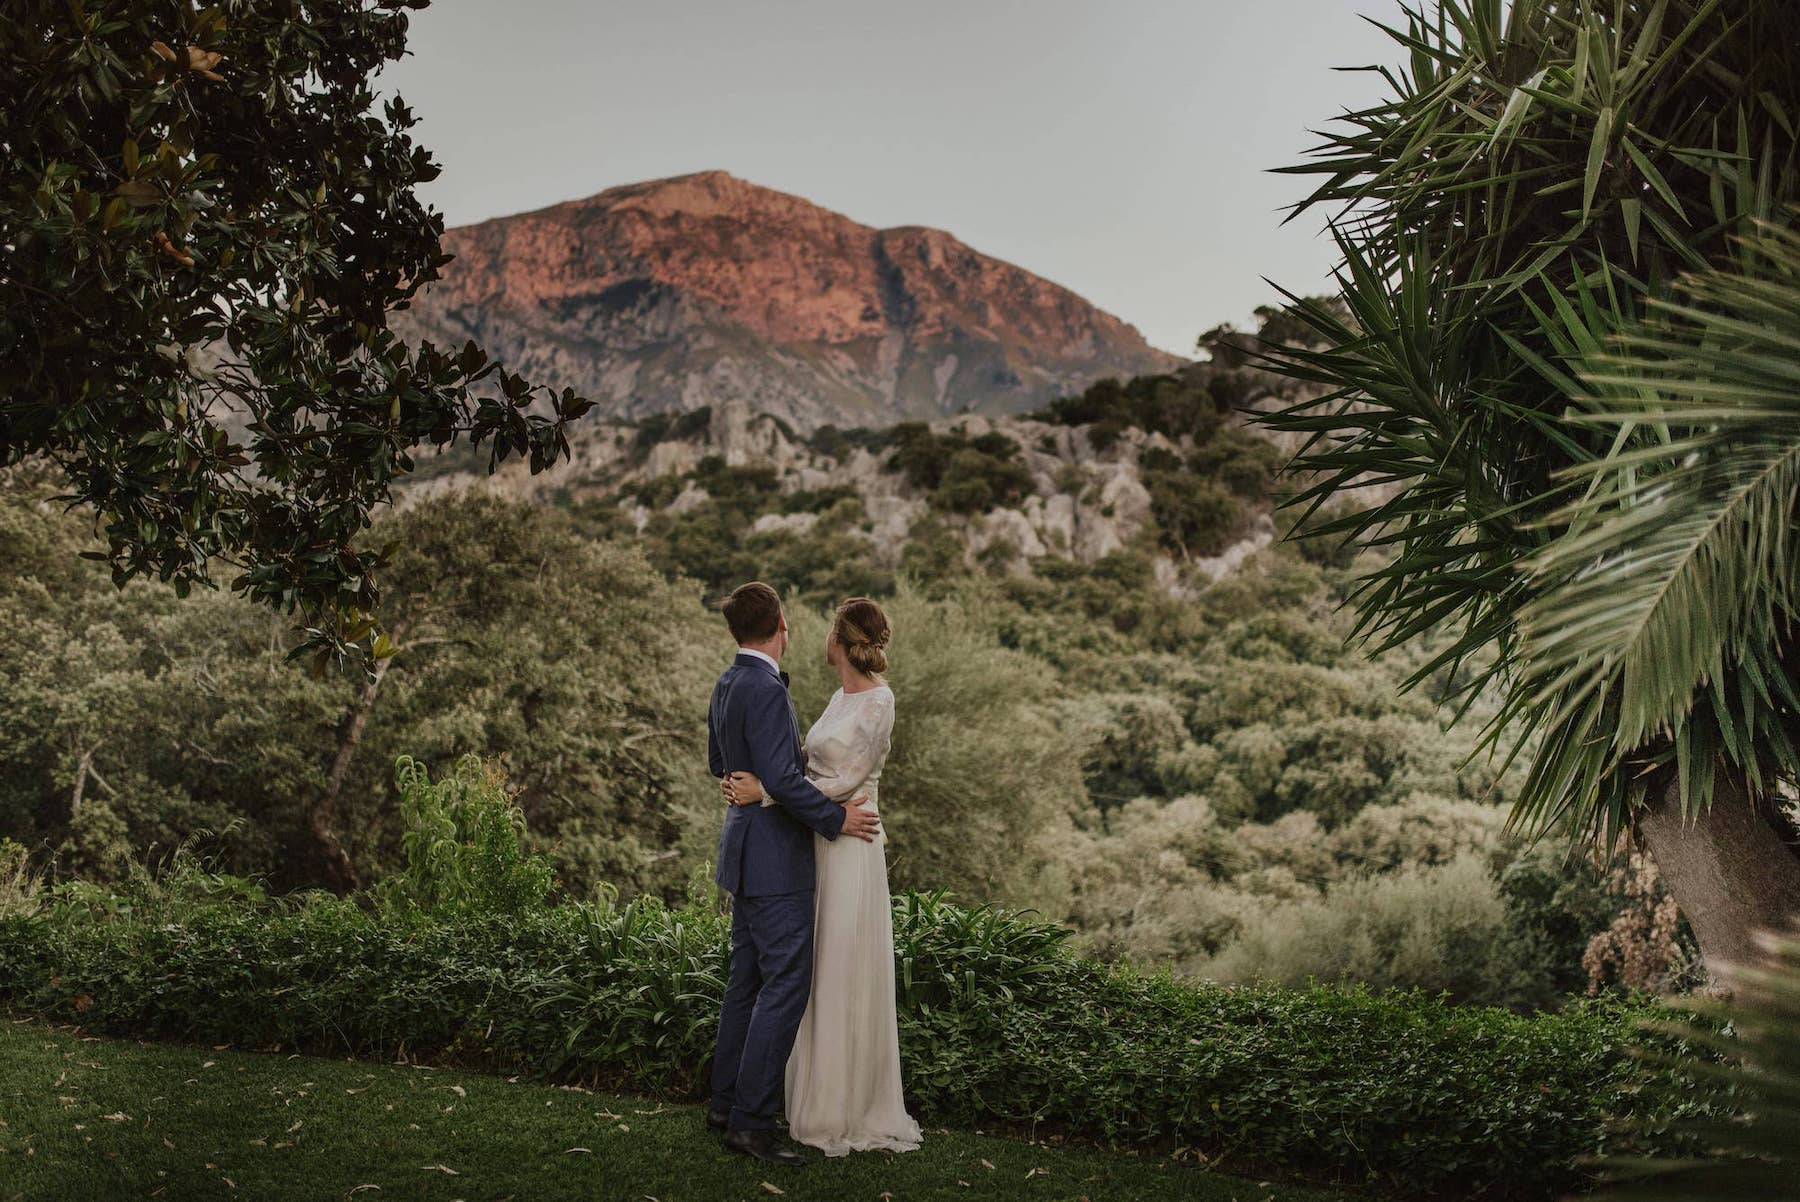 wedding ceremony with mountain views in a Majorcan vineyard